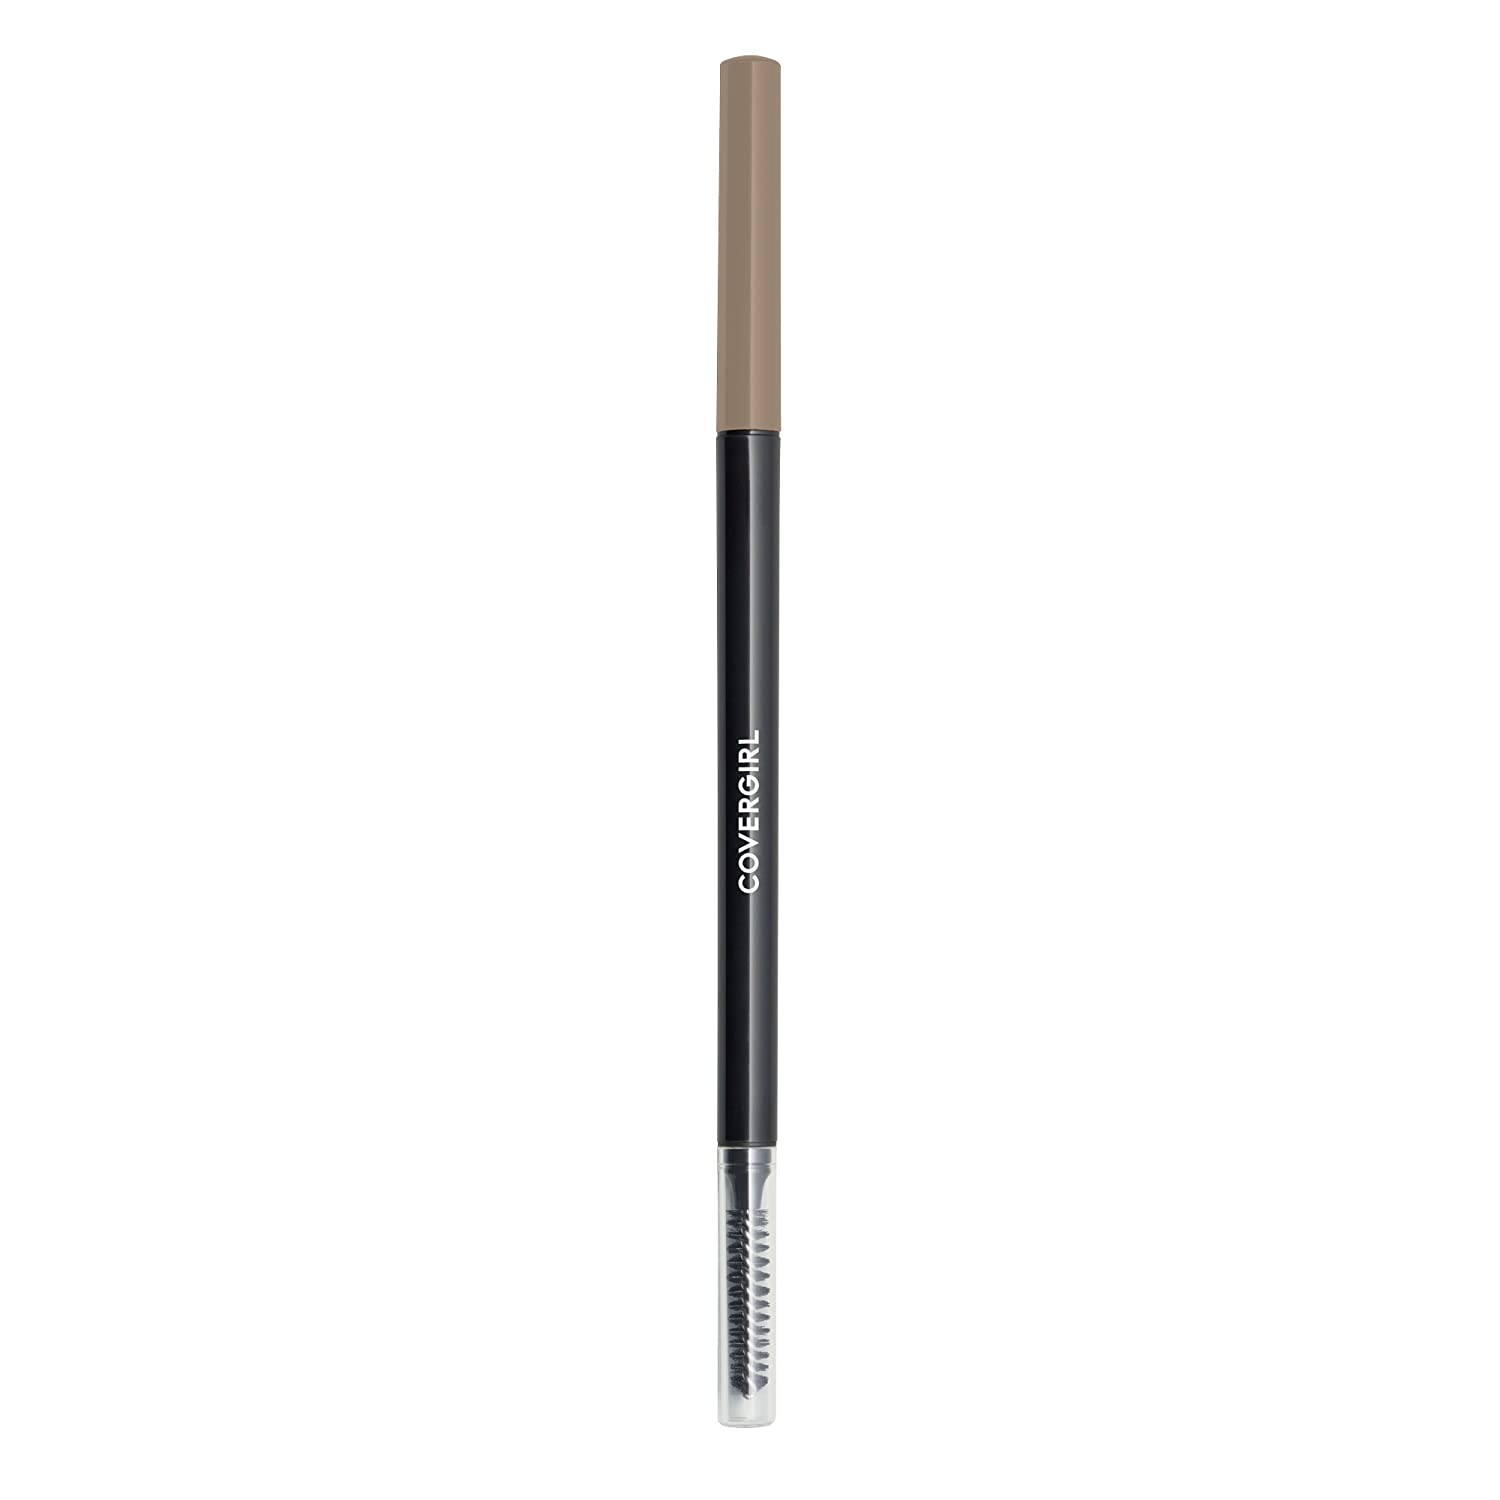 COVERGIRL - Easy Breezy Brow Micro-Fine + Define Pencil - Packaging May Vary Coty 0046200042389